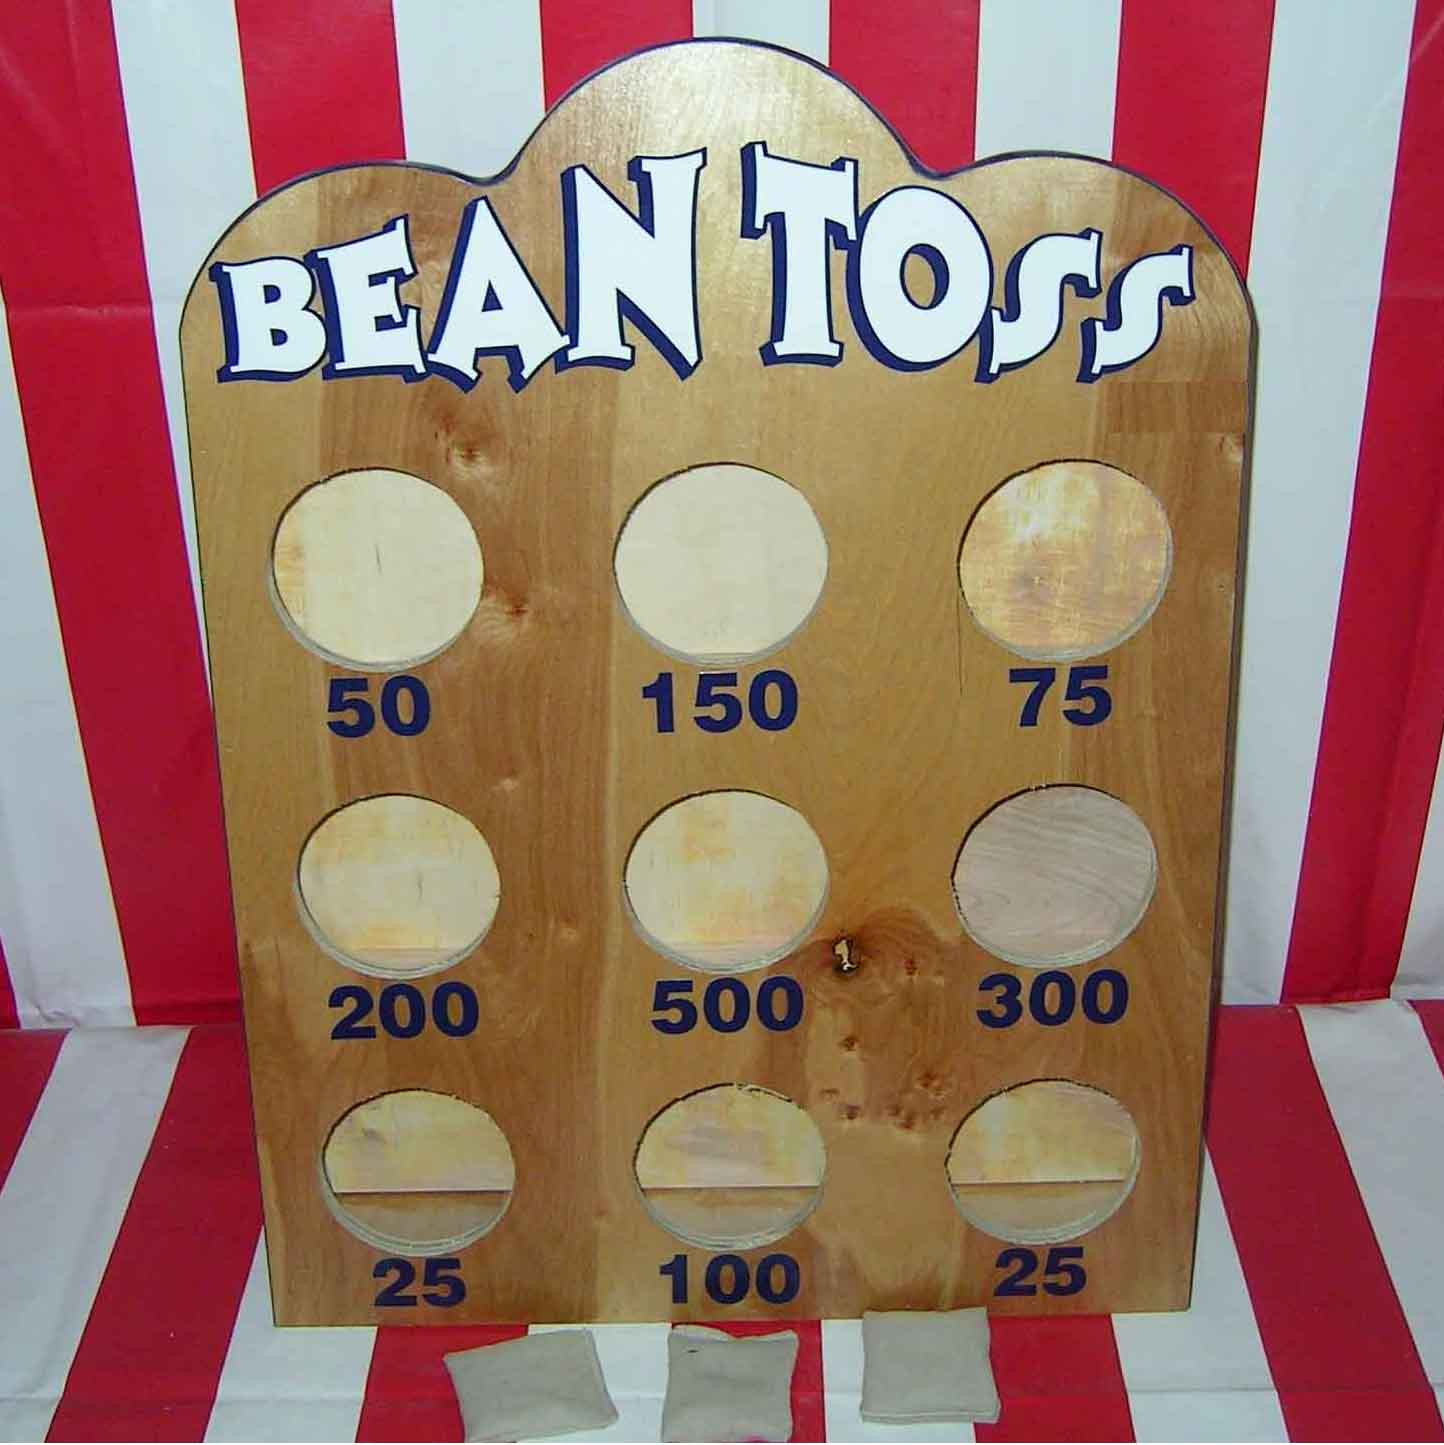 bean bag toss game rules - DriverLayer Search Engine